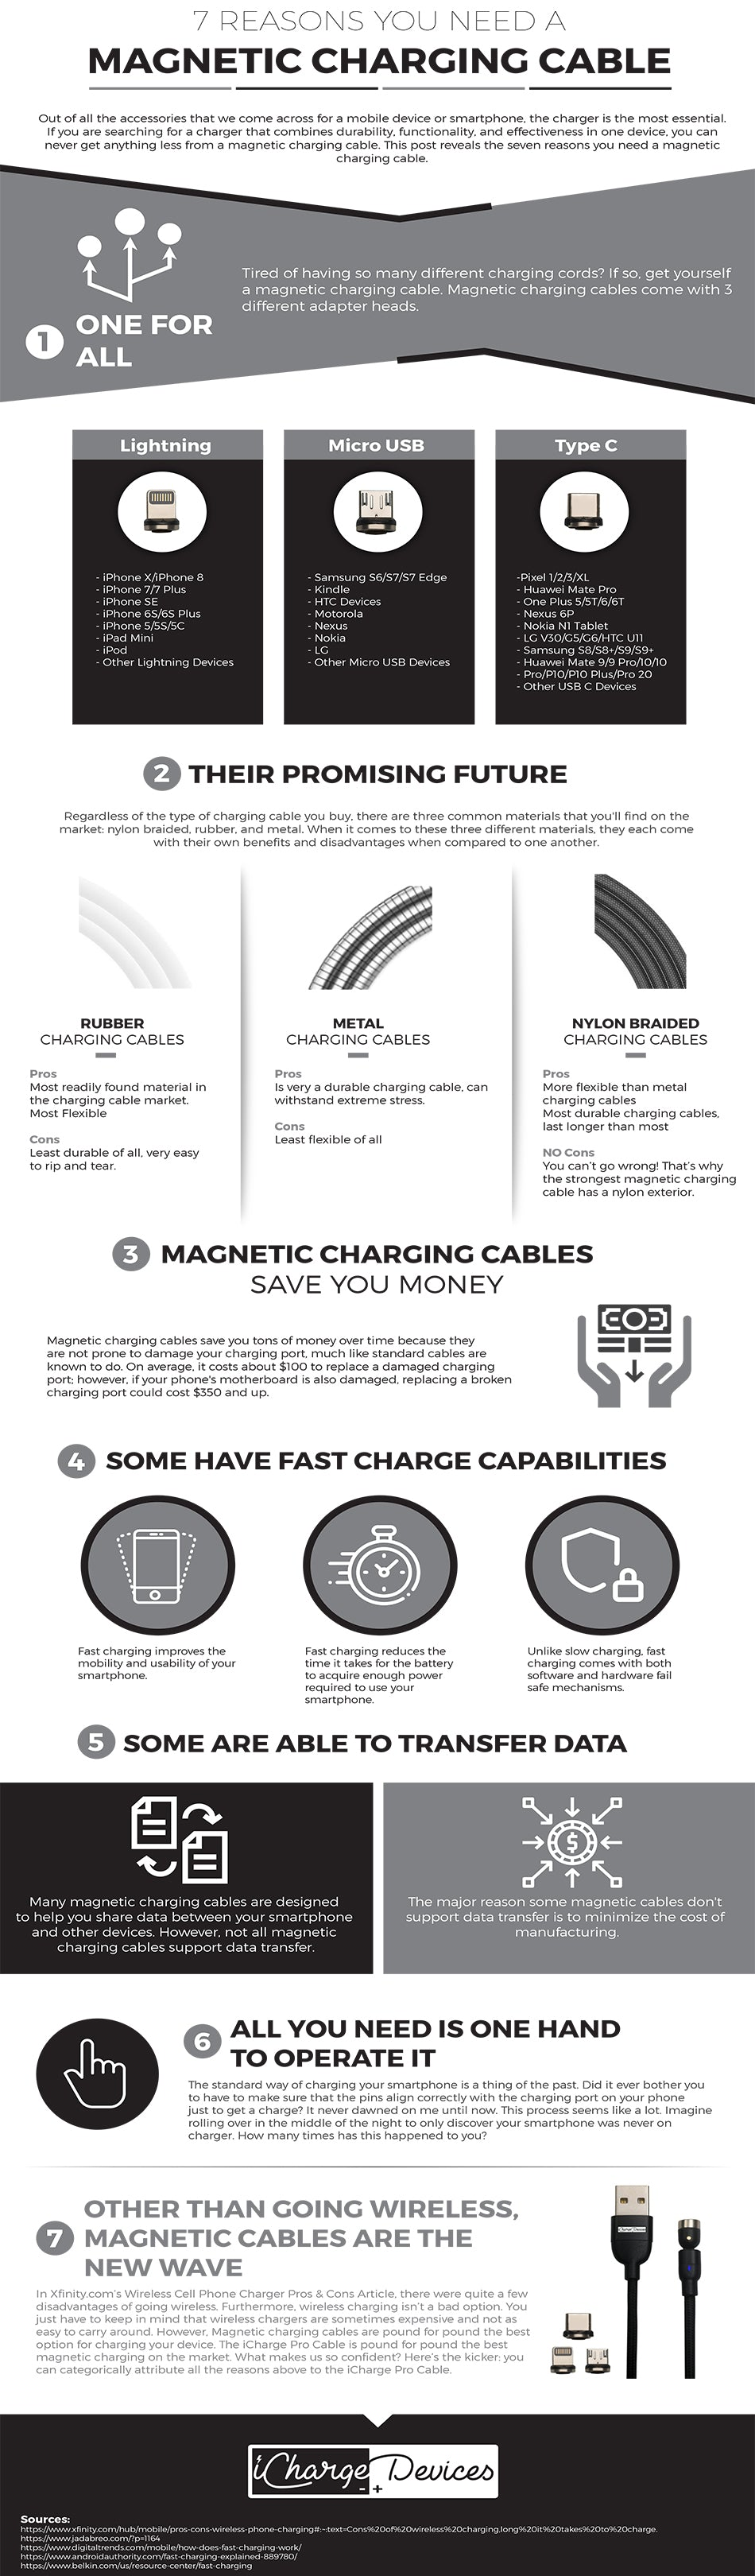 7 Reasons You Need a Magnetic Charging Cable